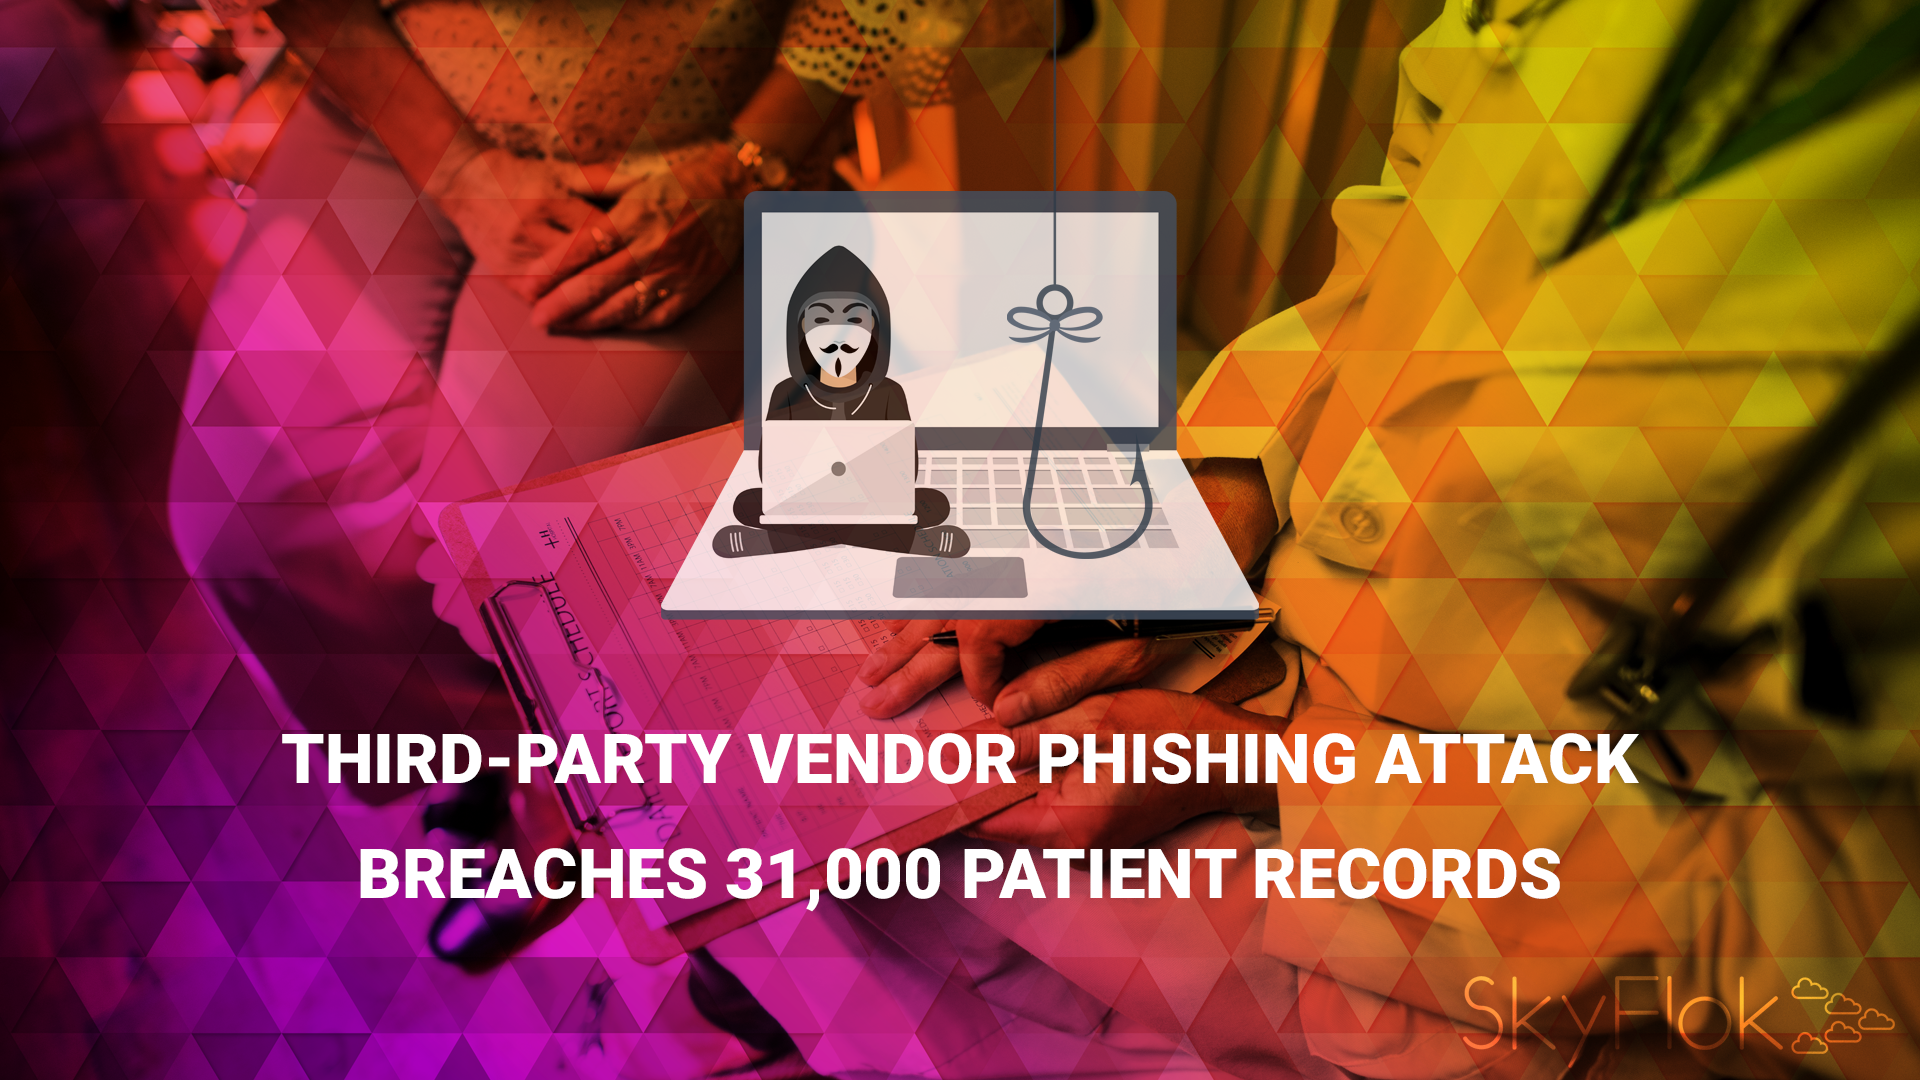 Third-Party Vendor Phishing Attack Breaches 31,000 Patient Records